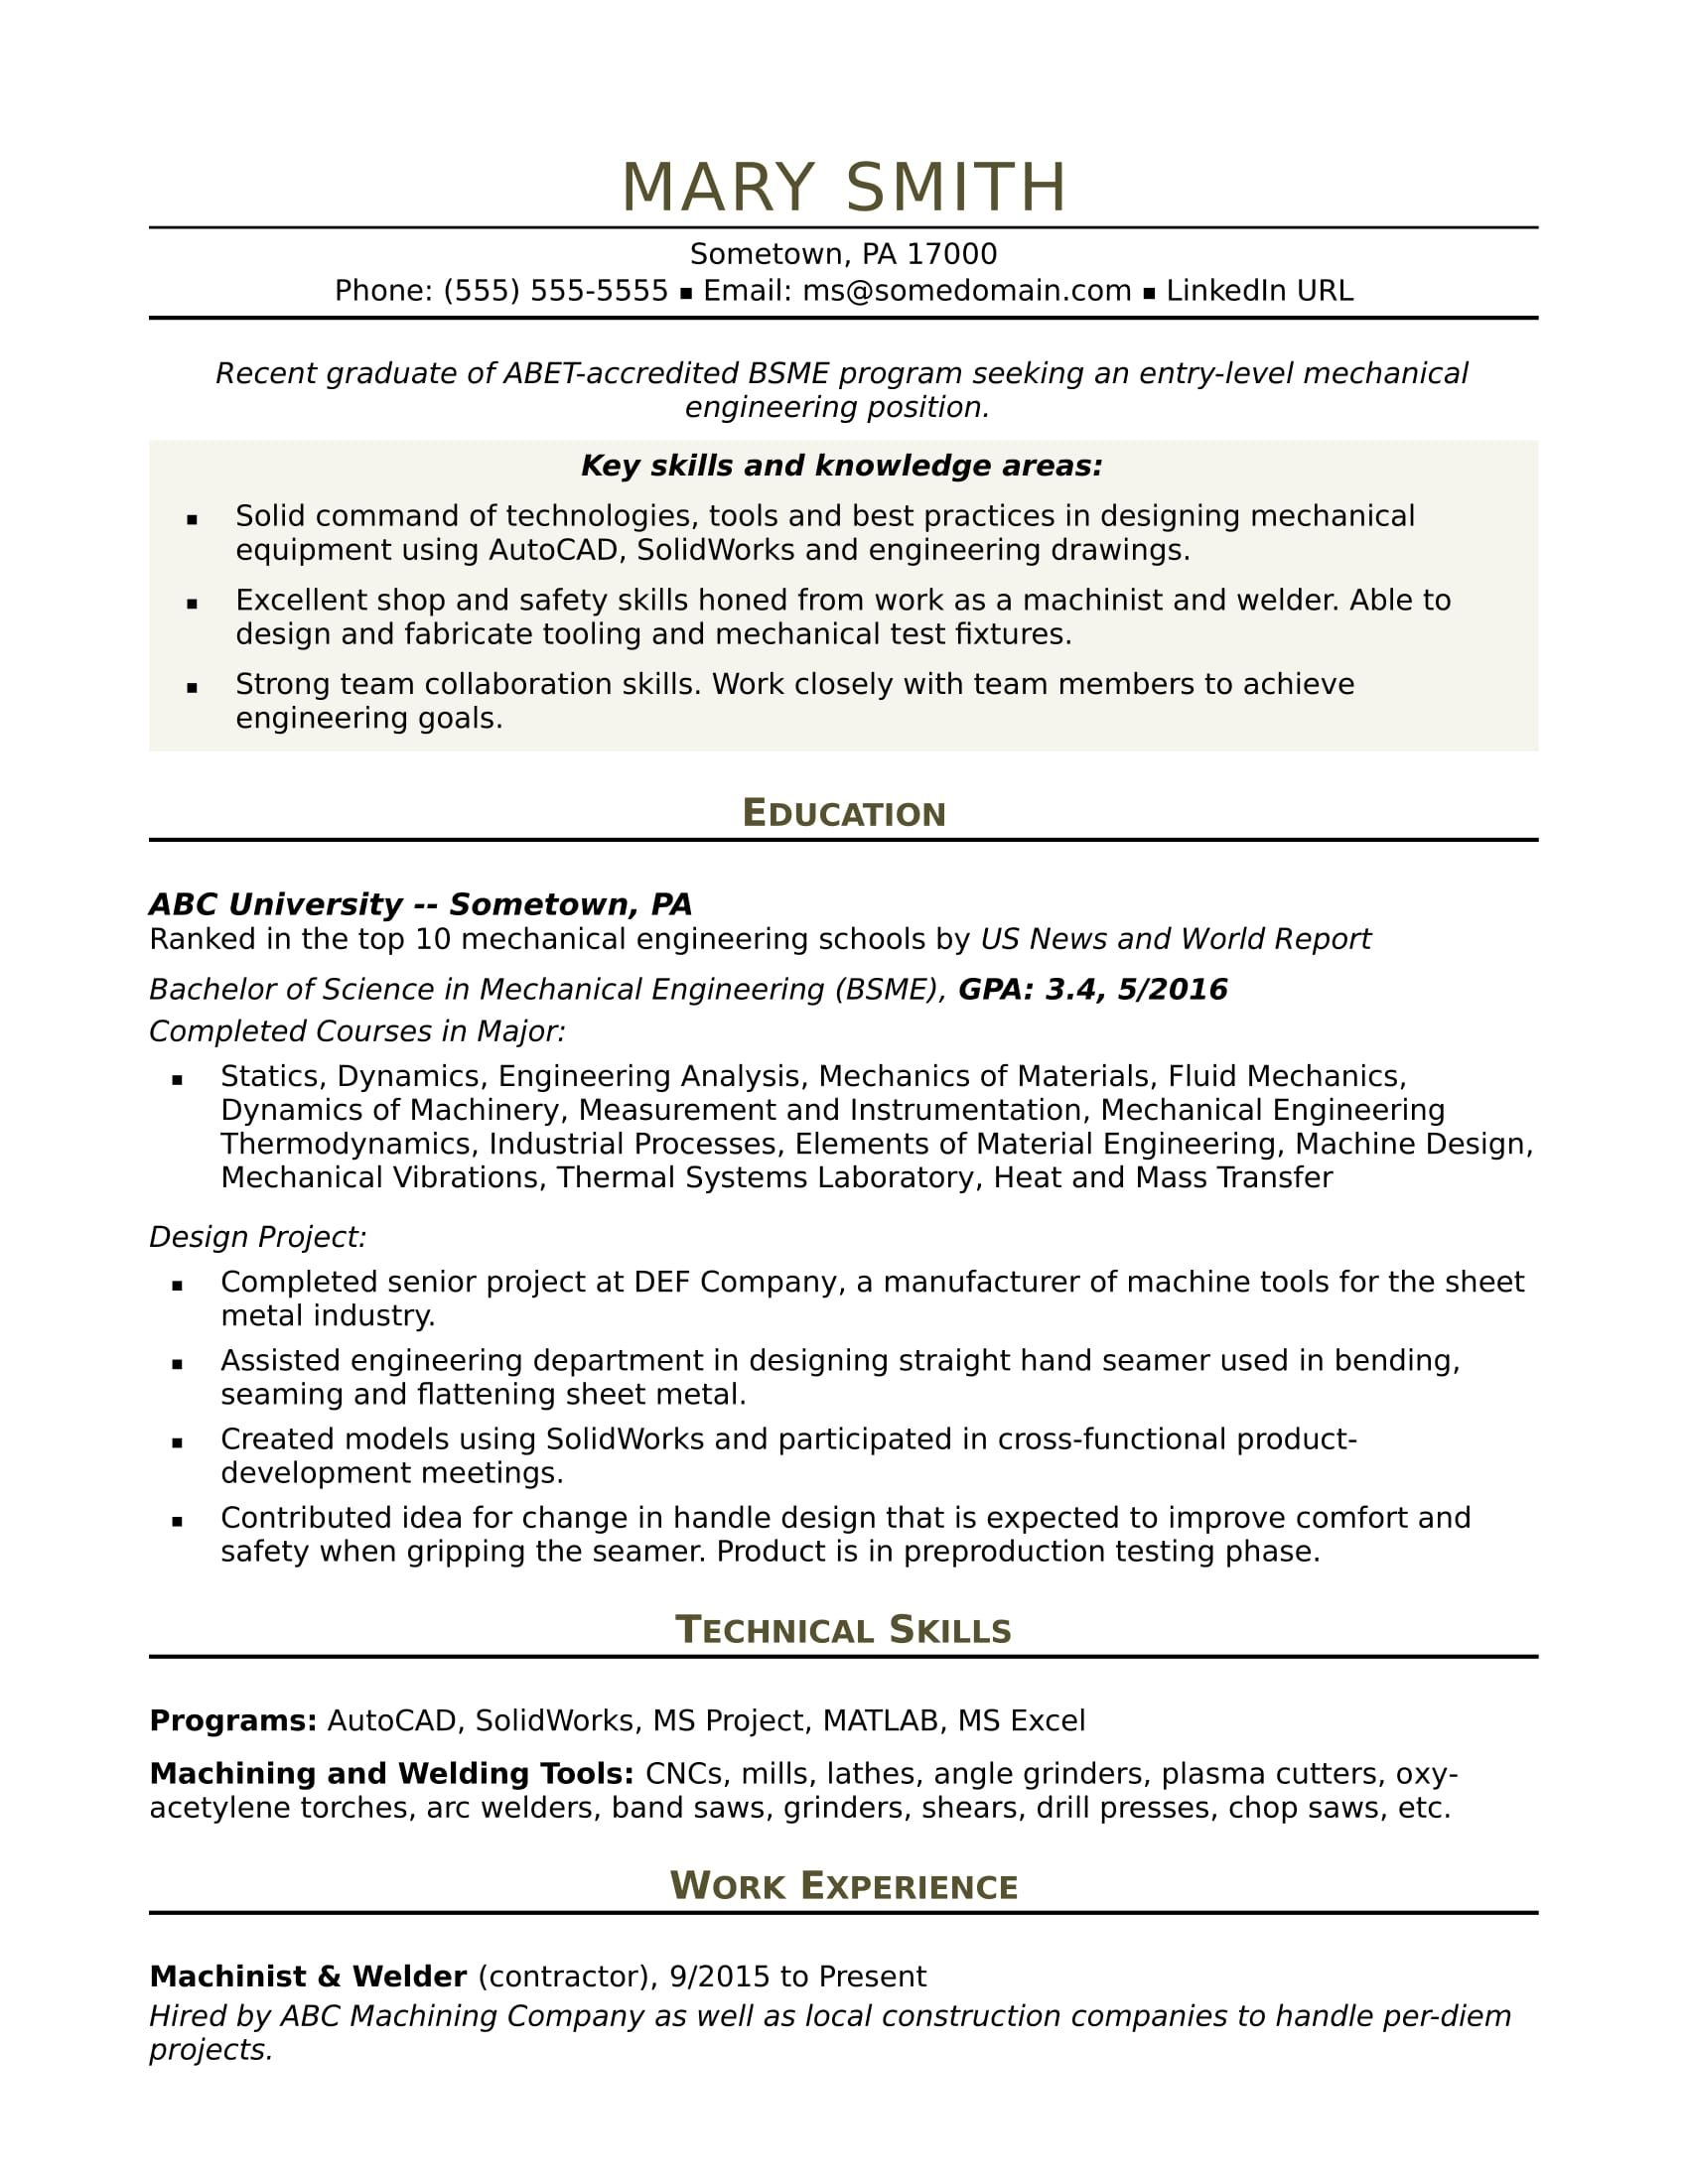 View This Sample Resume For An Entry Level Mechanical Engineer For Ideas On How You Engineering Resume Templates Engineering Resume Mechanical Engineer Resume